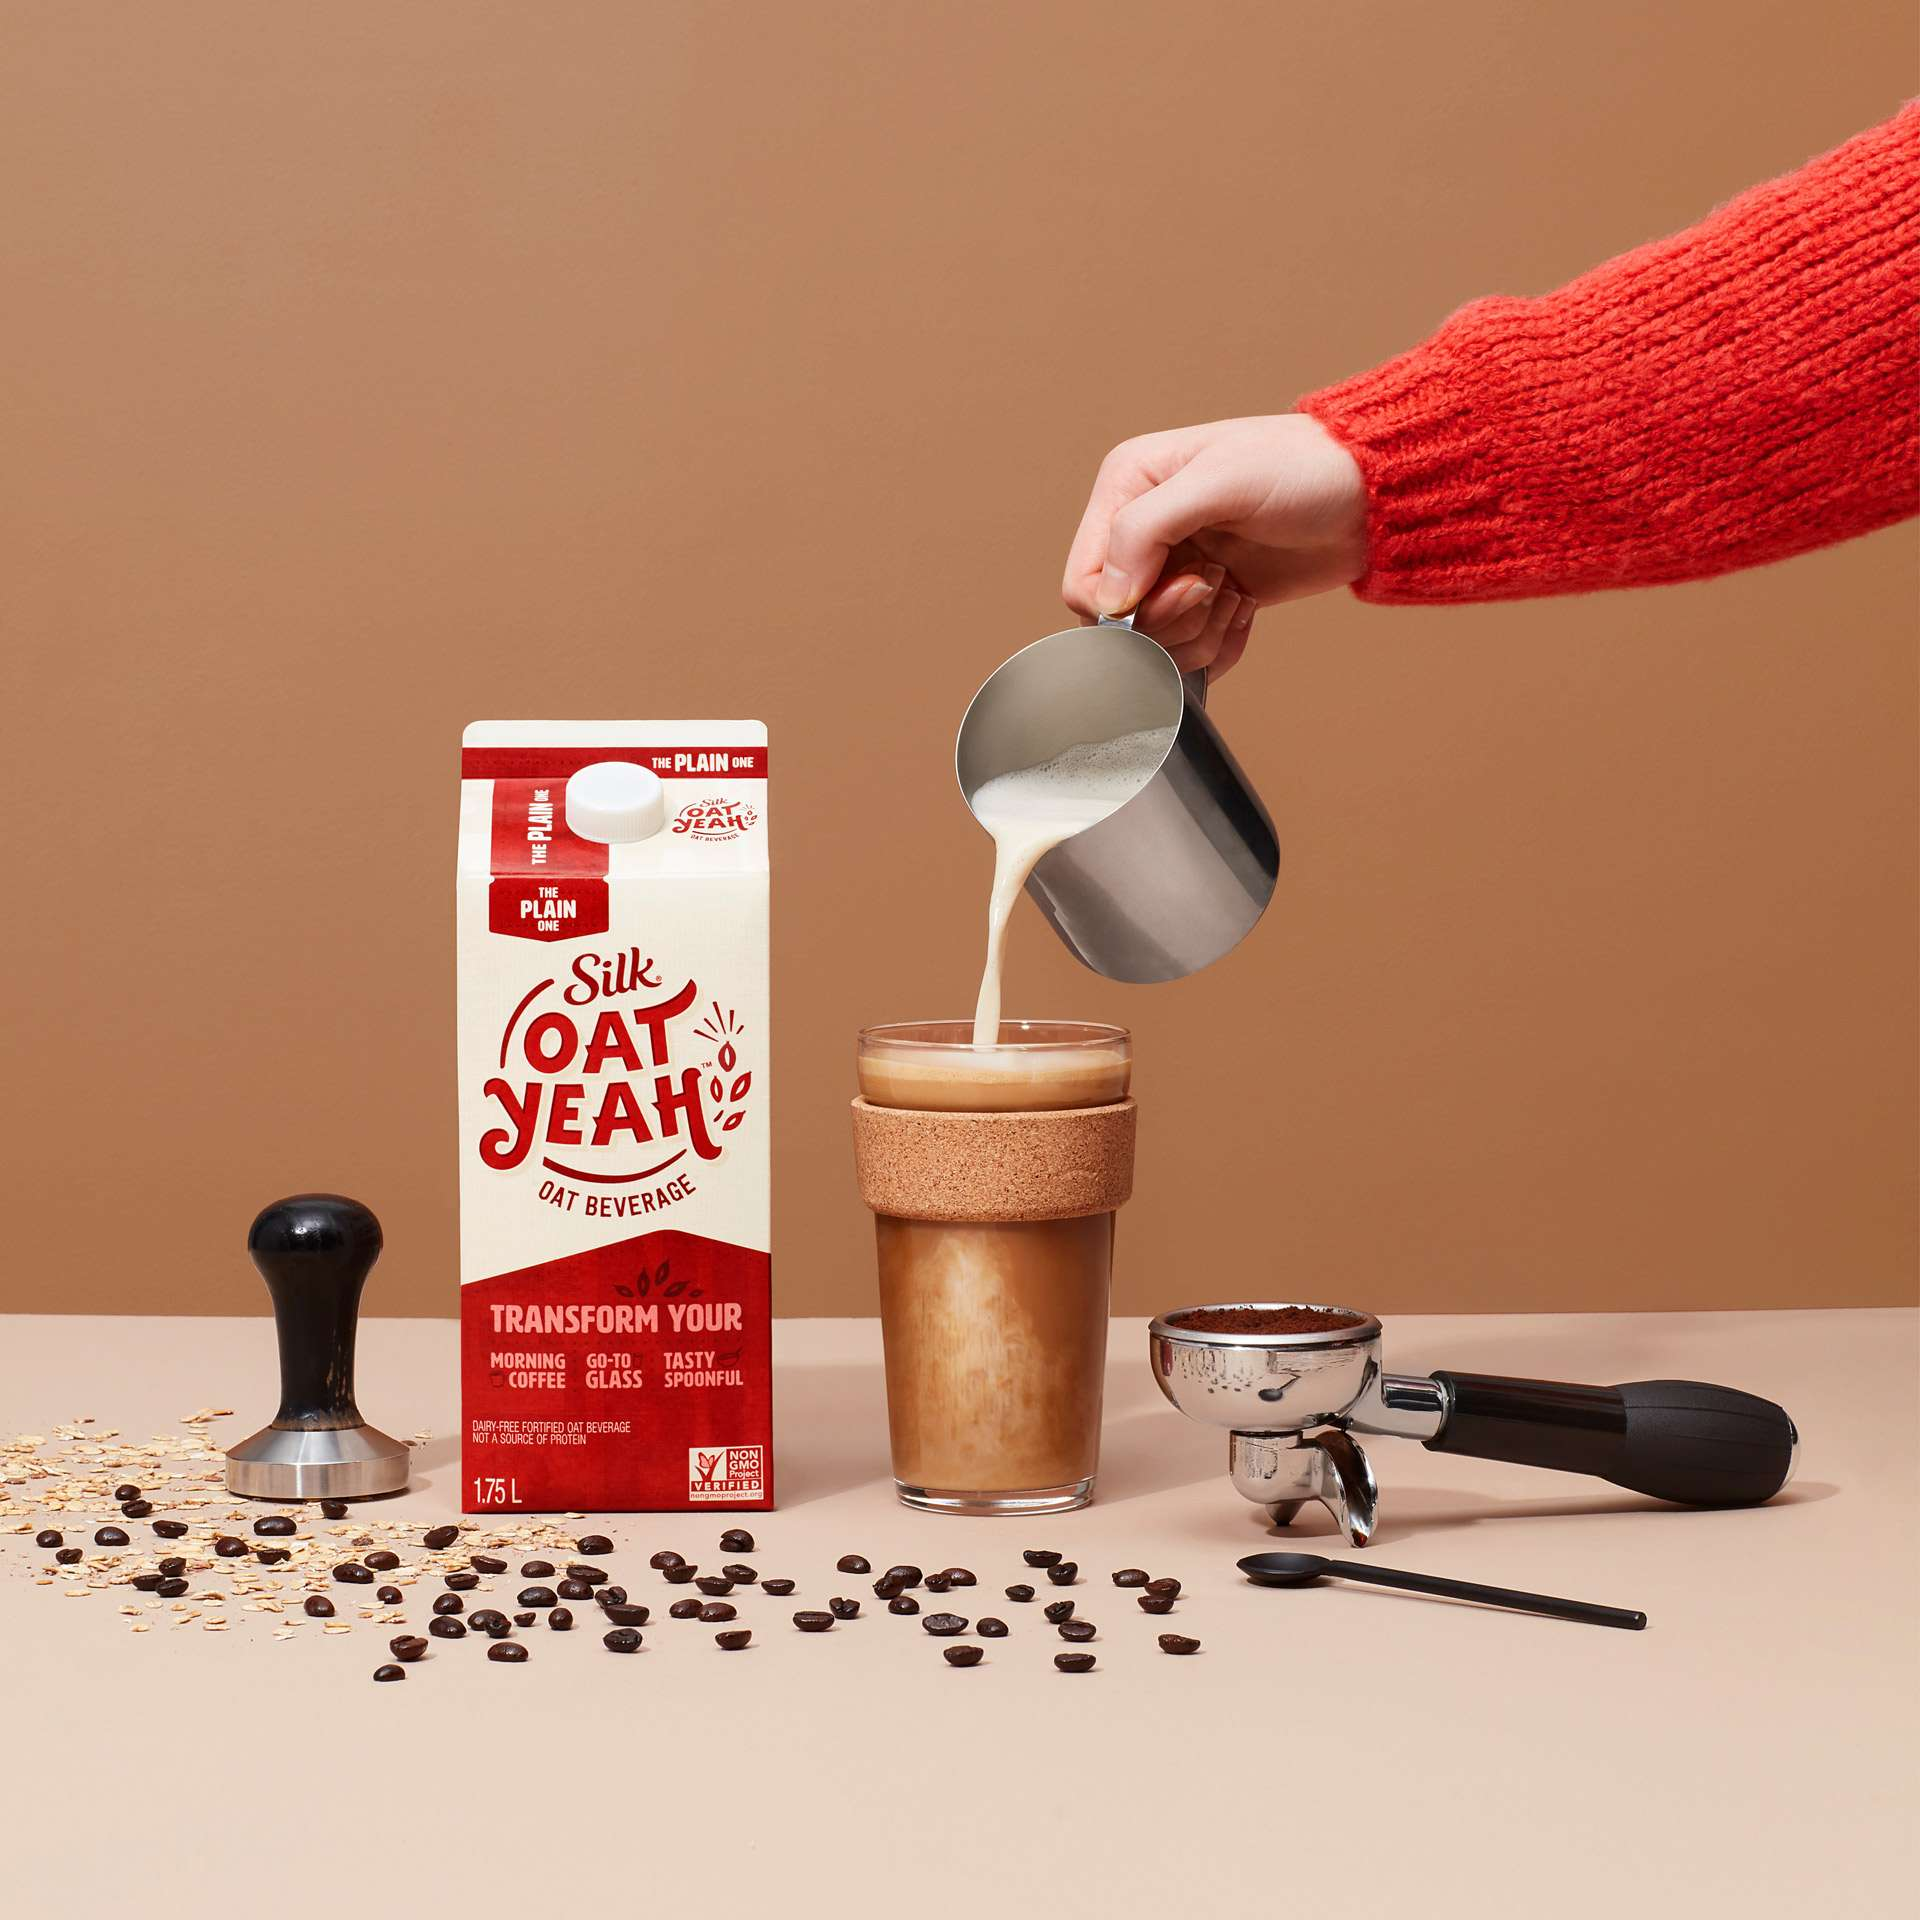 carton of plain oat milk beside tall glass hand pouring warm foaming milk into coffee in glass by Simon Duhamel for Oat Yeah Silk and Carl agency